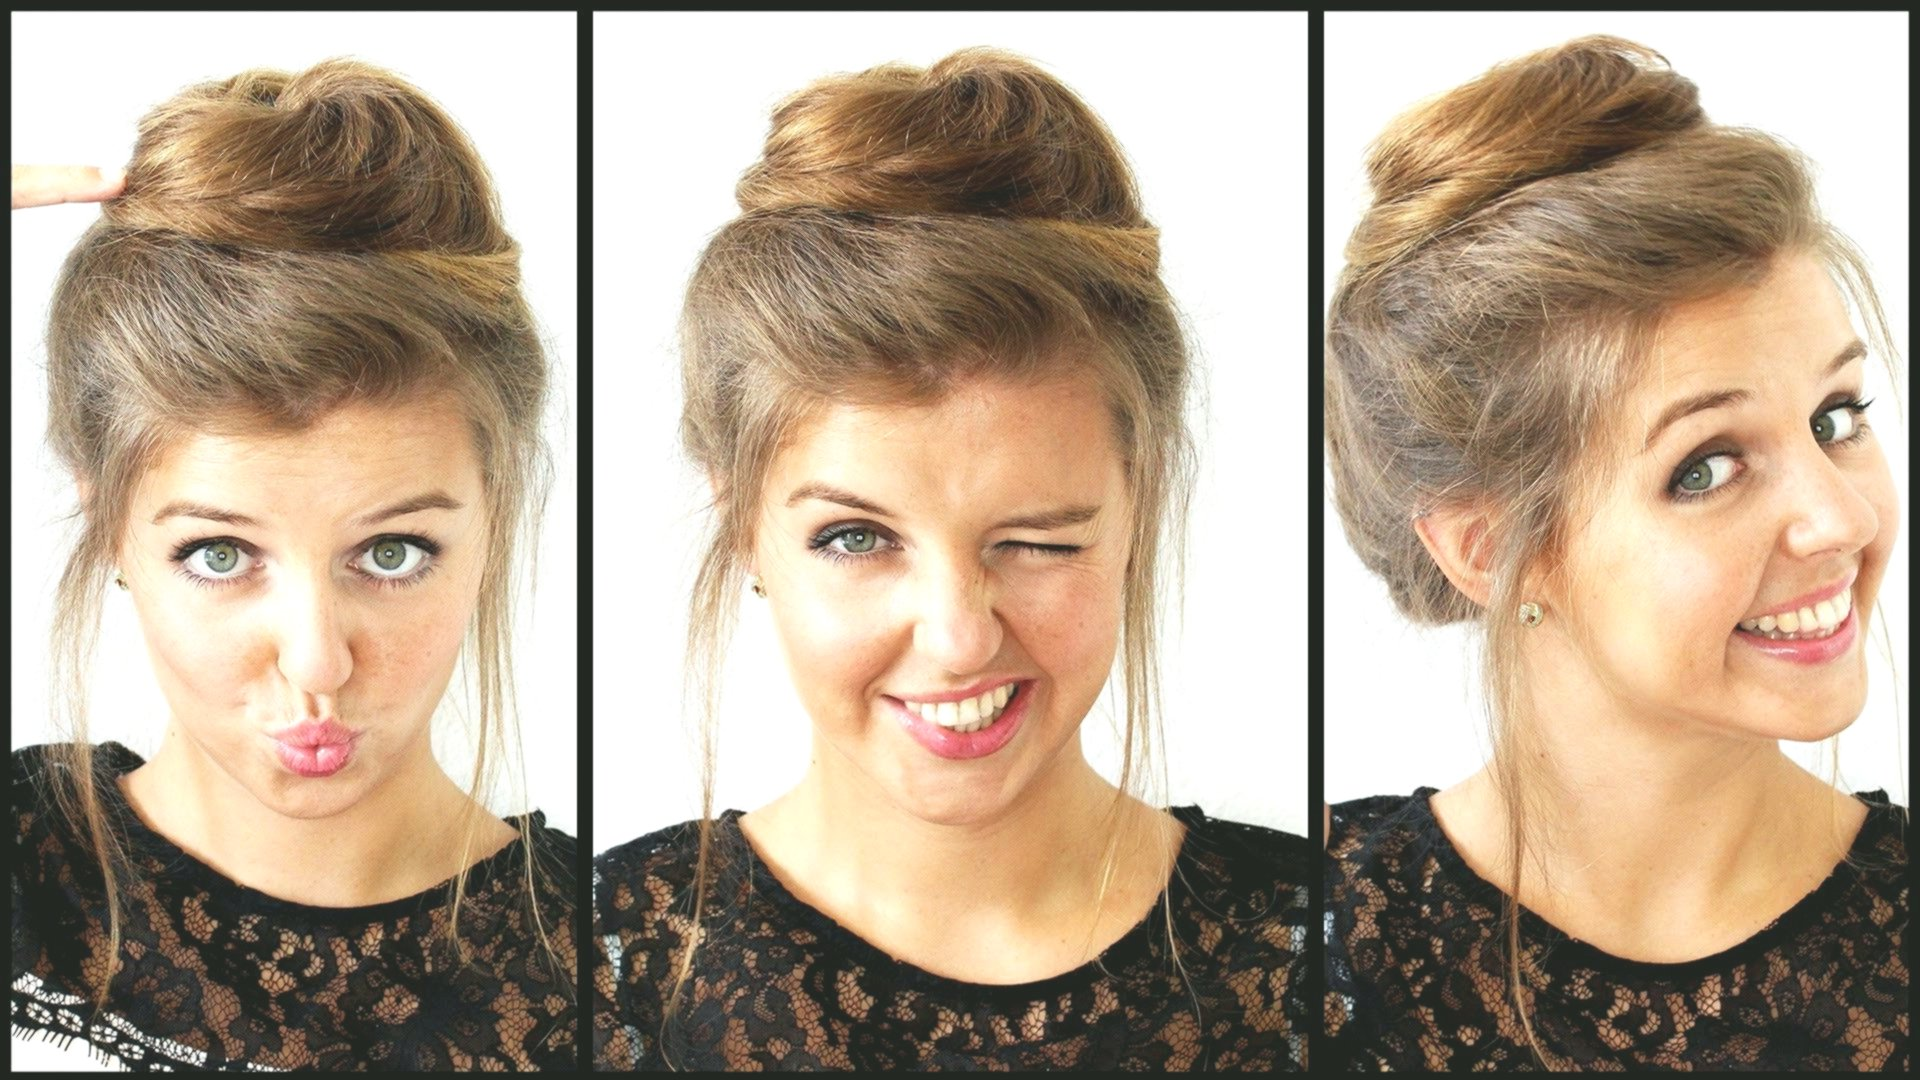 terribly cool updos short hair self make build layout-Wonderful updos Short Hair Do It Yourself wall